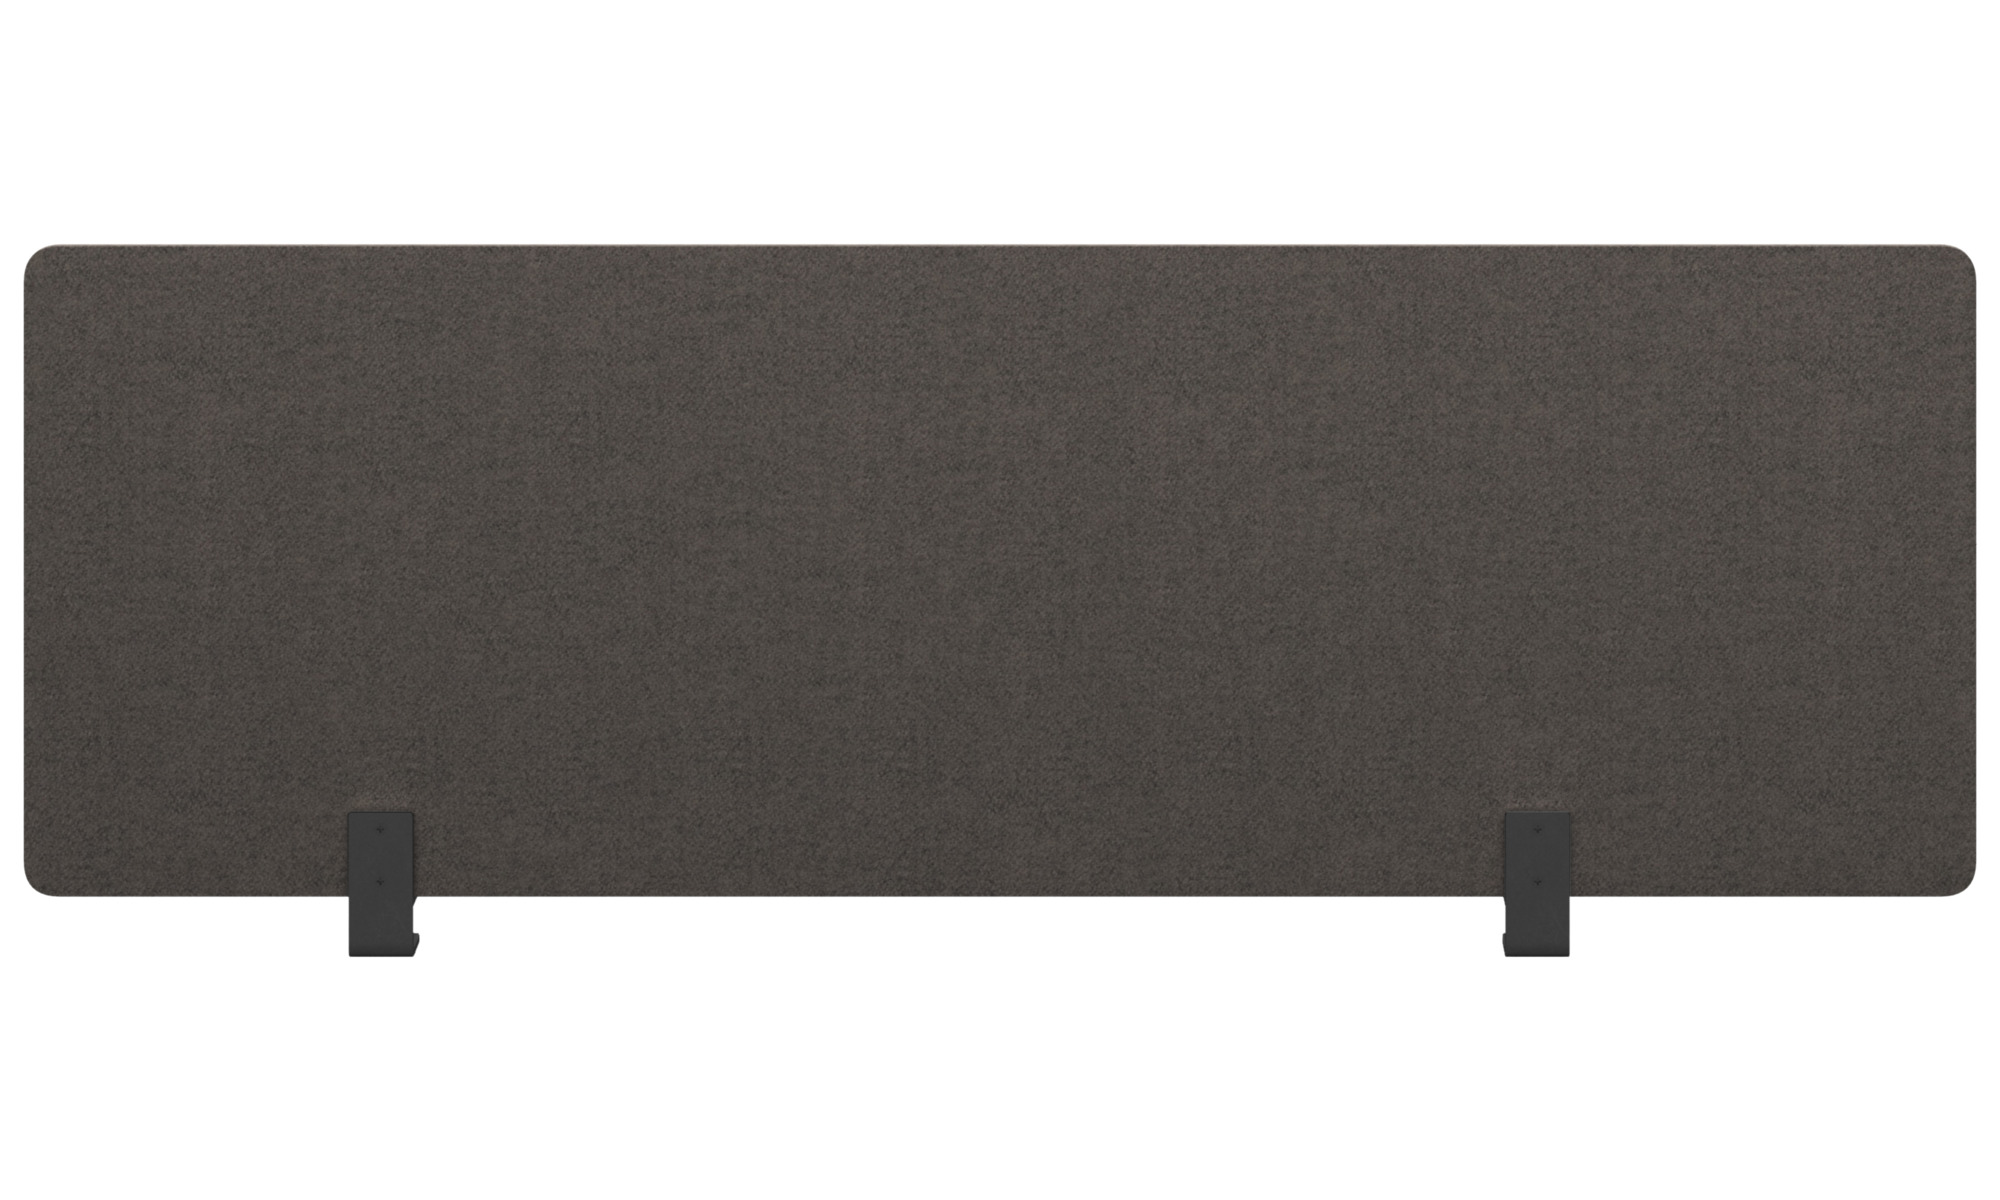 Furniture Accessories Modesty Panel